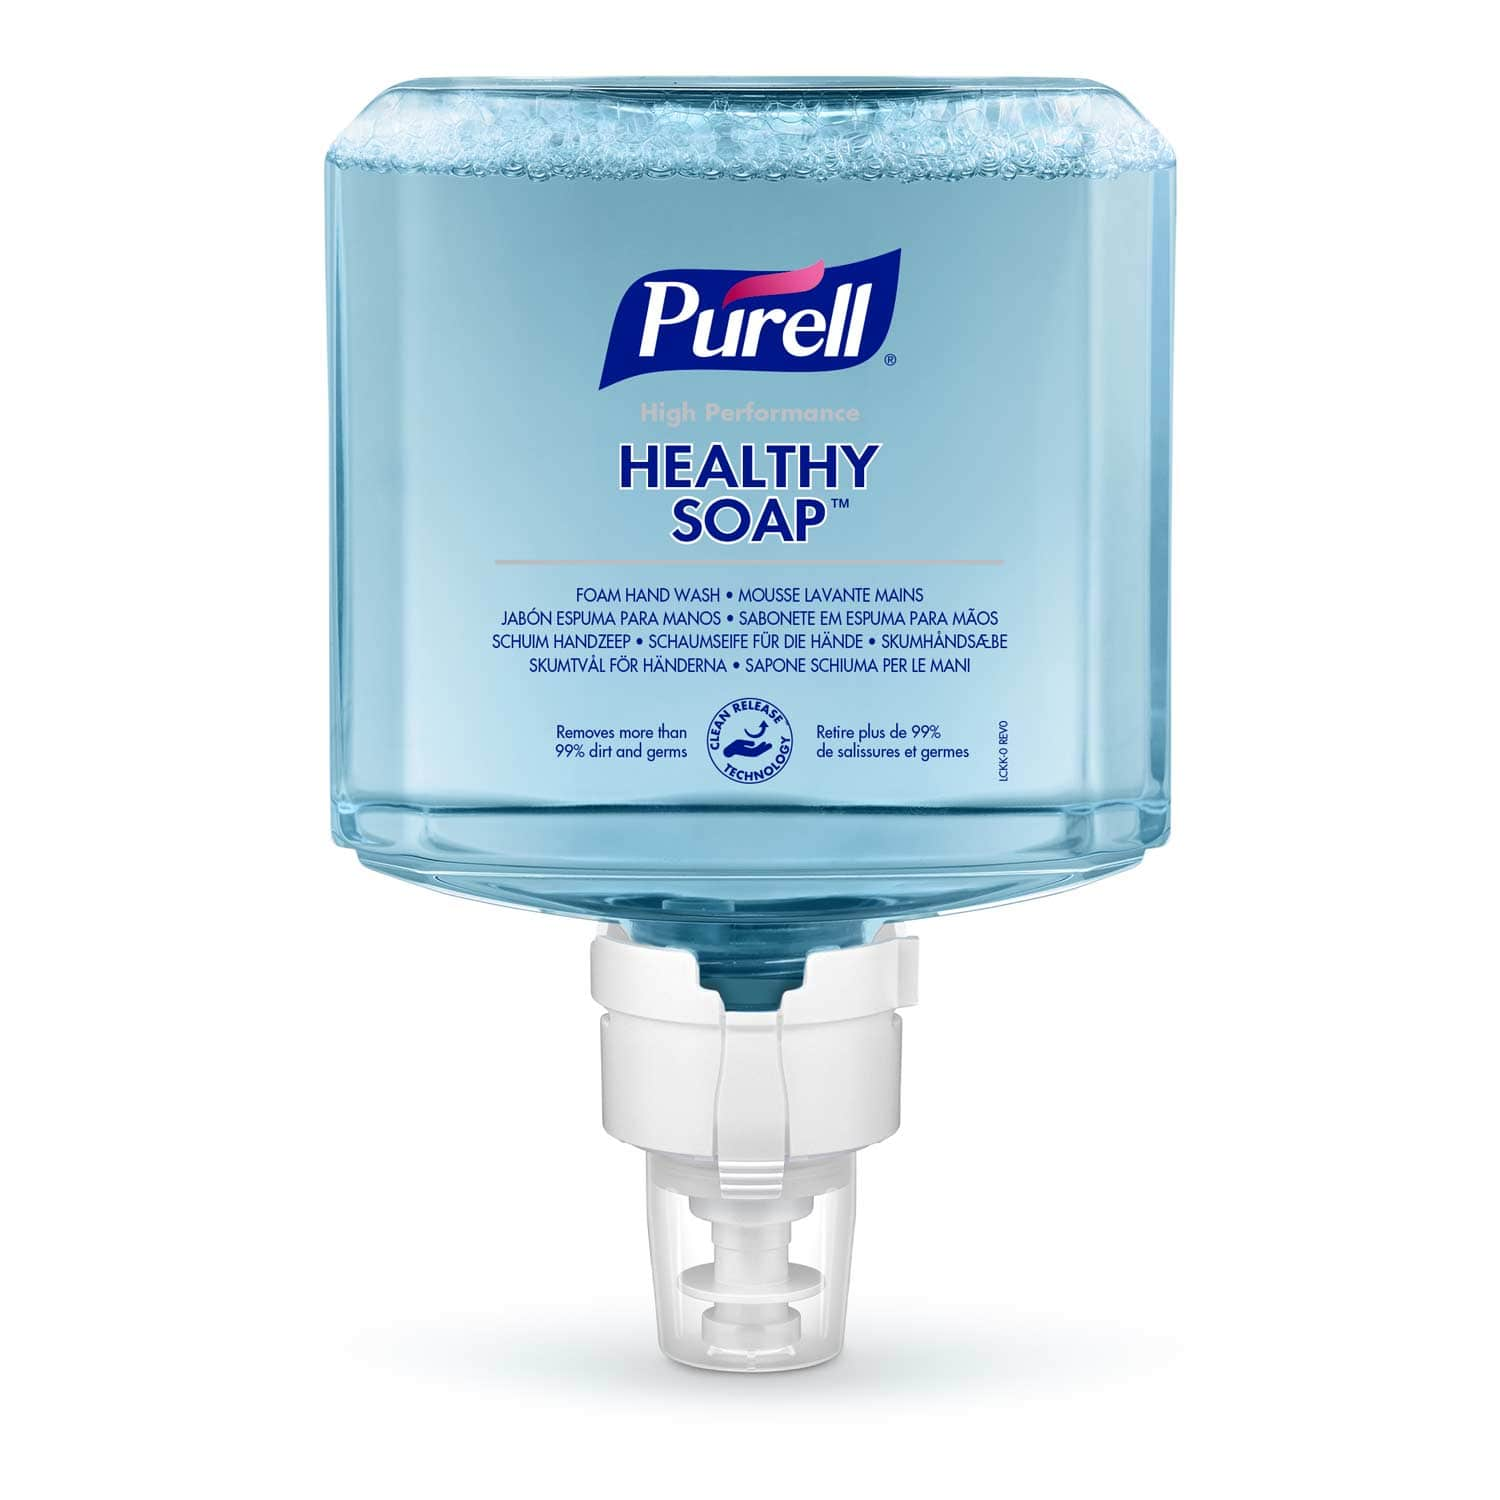 https://static.praxisdienst.com/out/pictures/generated/product/1/1500_1500_100/138508_purell_healthy_soap_1.jpg